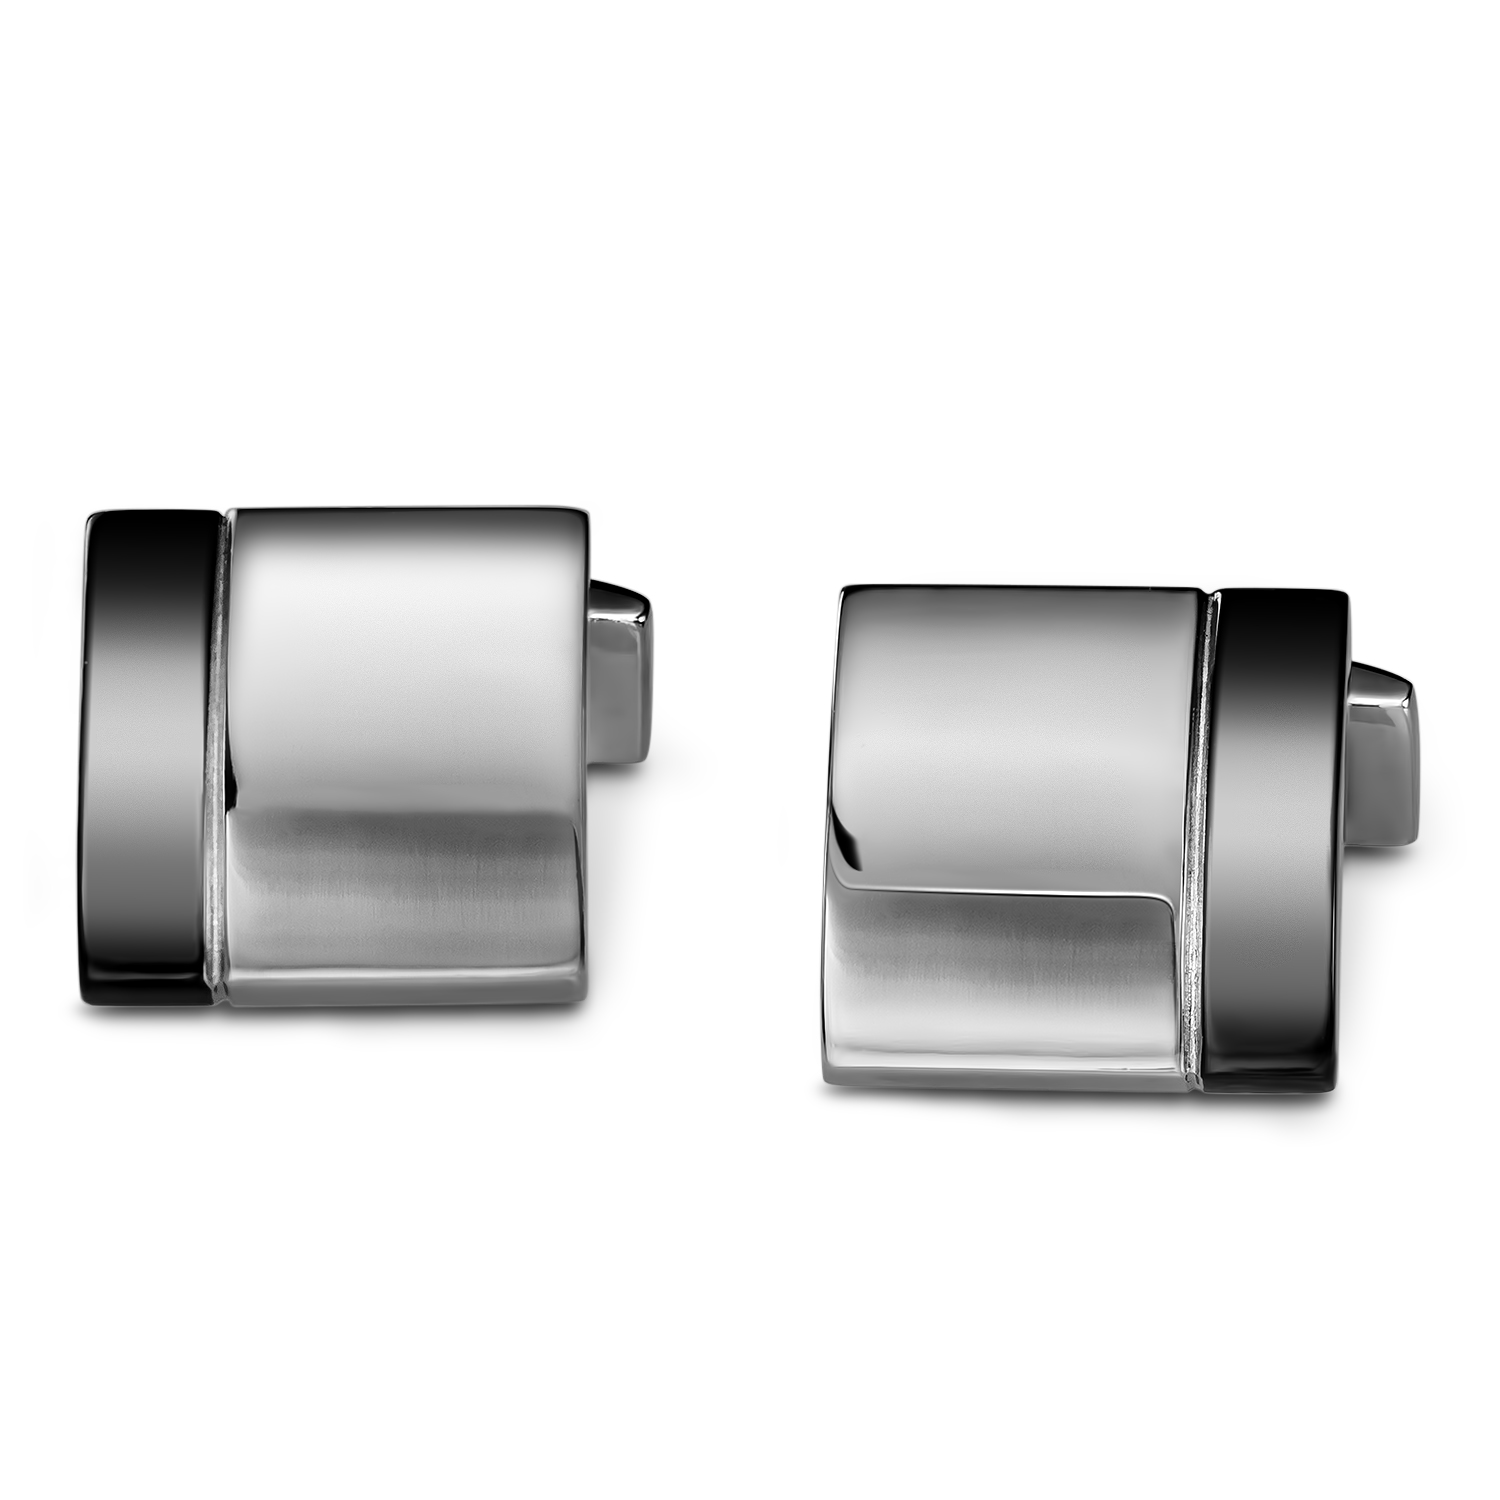 Titanium Square Cuff Links